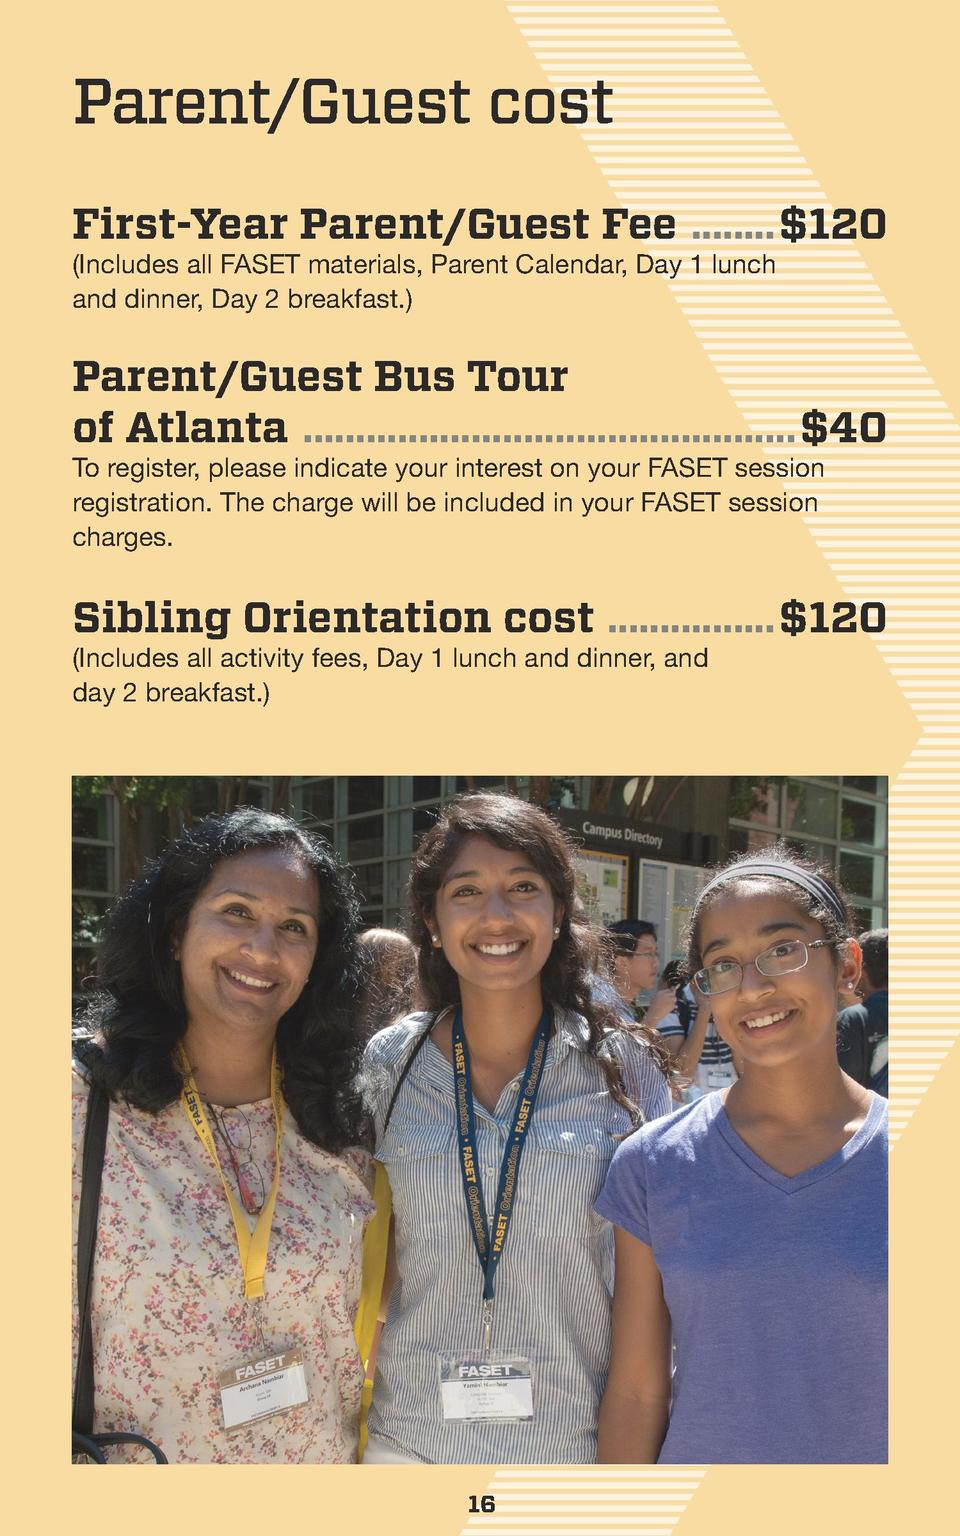 Parent Guest cost First-Year Parent Guest Fee ......... 120  Includes all FASET materials, Parent Calendar, Day 1 lunch an...